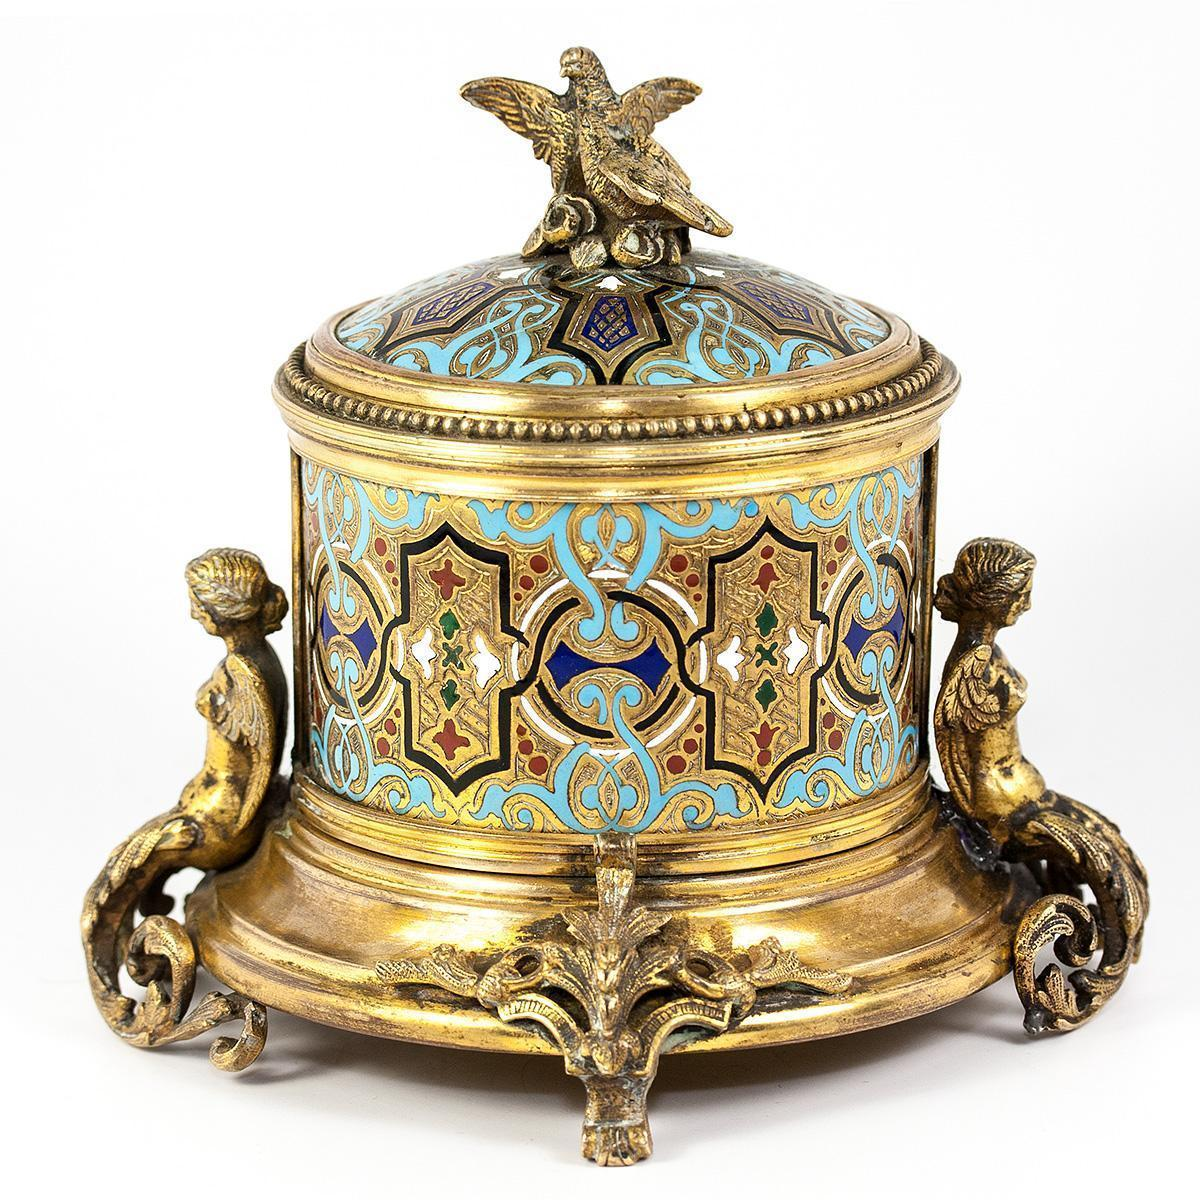 Antique French or Russian Champleve Enamel Box, Jewelry Casket, Figural - Superb!